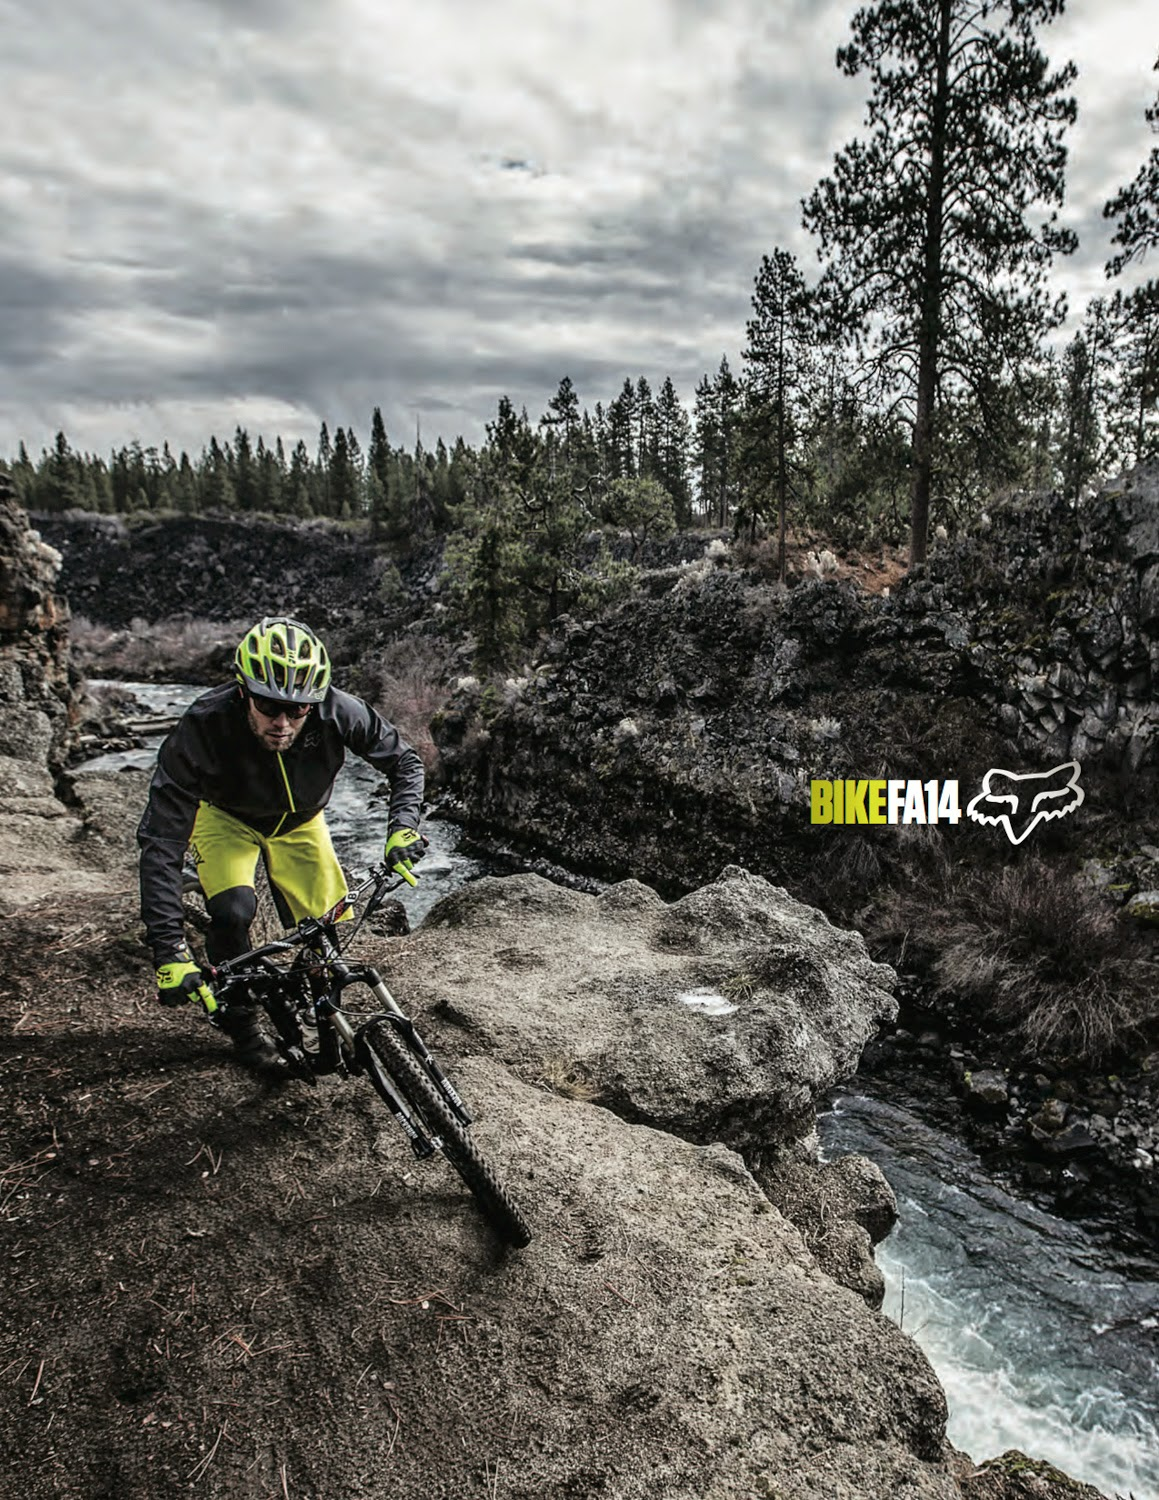 Kirt Voreis mountain bikes next to the Deschutes River in the new Fox Head Catalog.